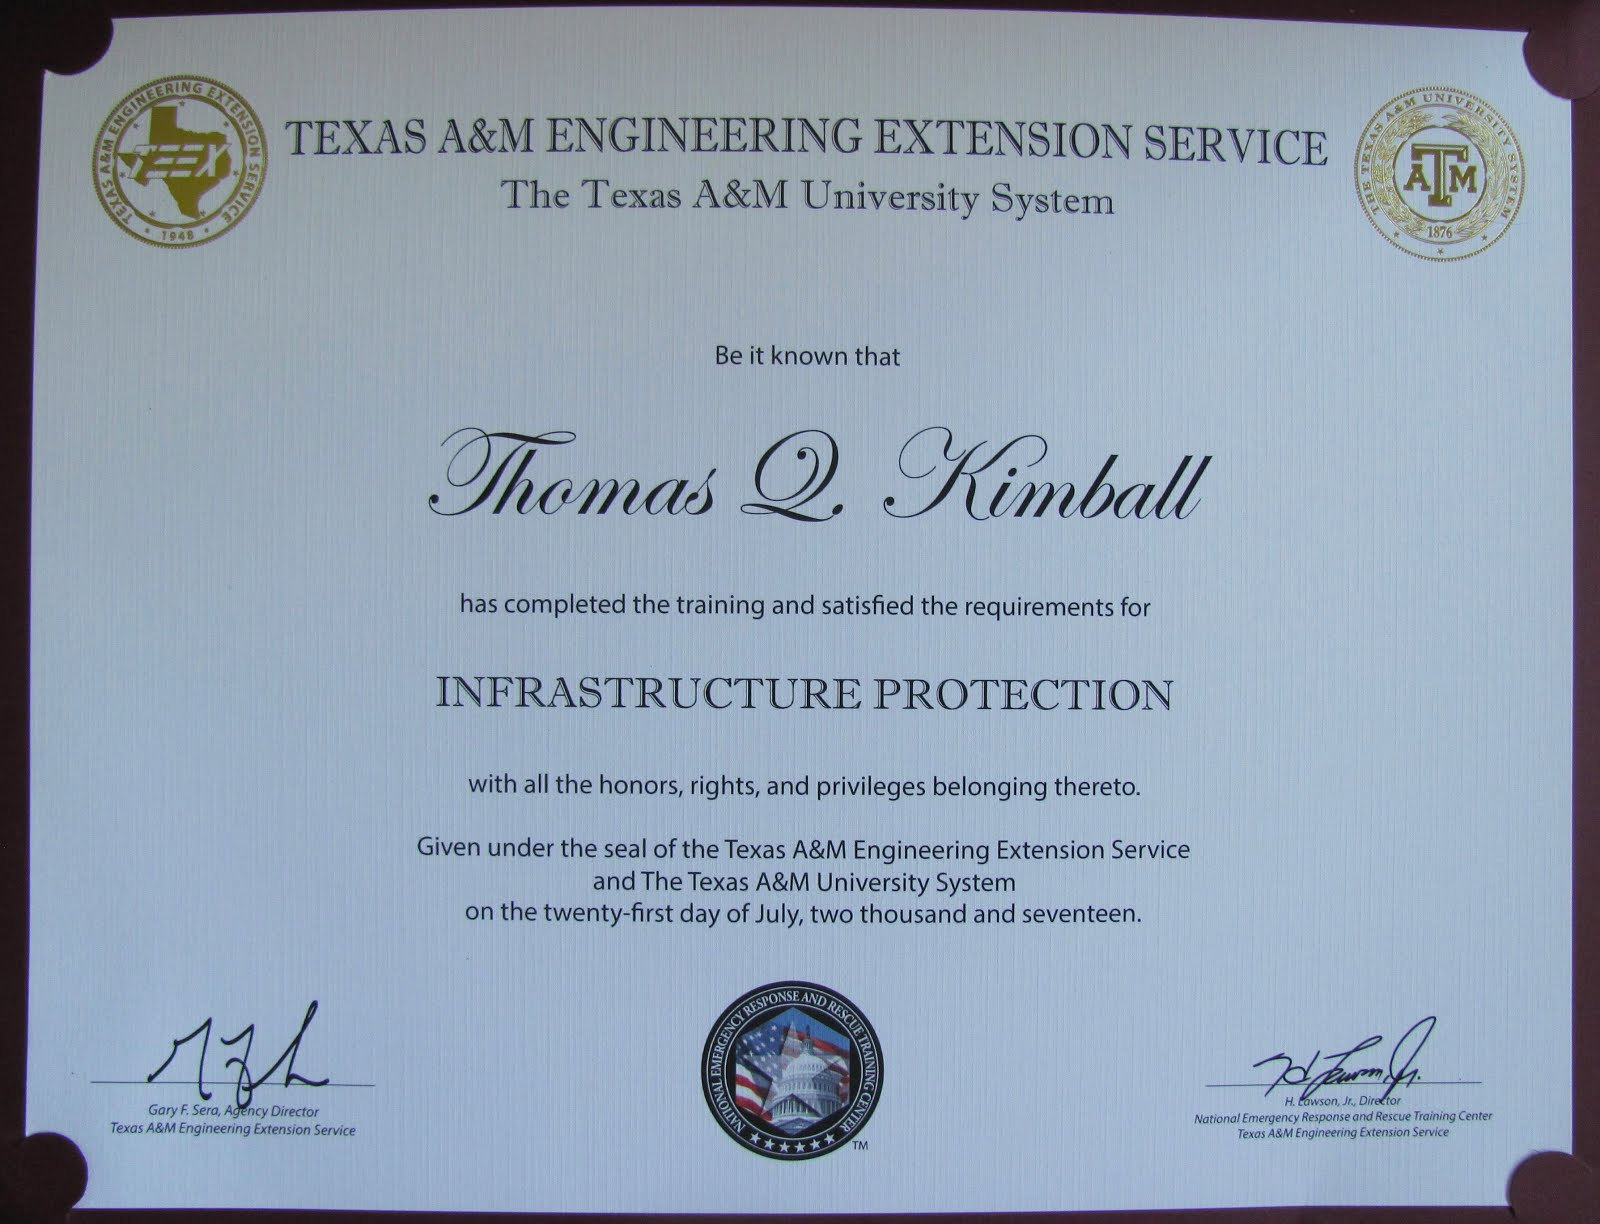 Texas A&M Engineering Extension Service TEEX Infrastructure Protection Certificate